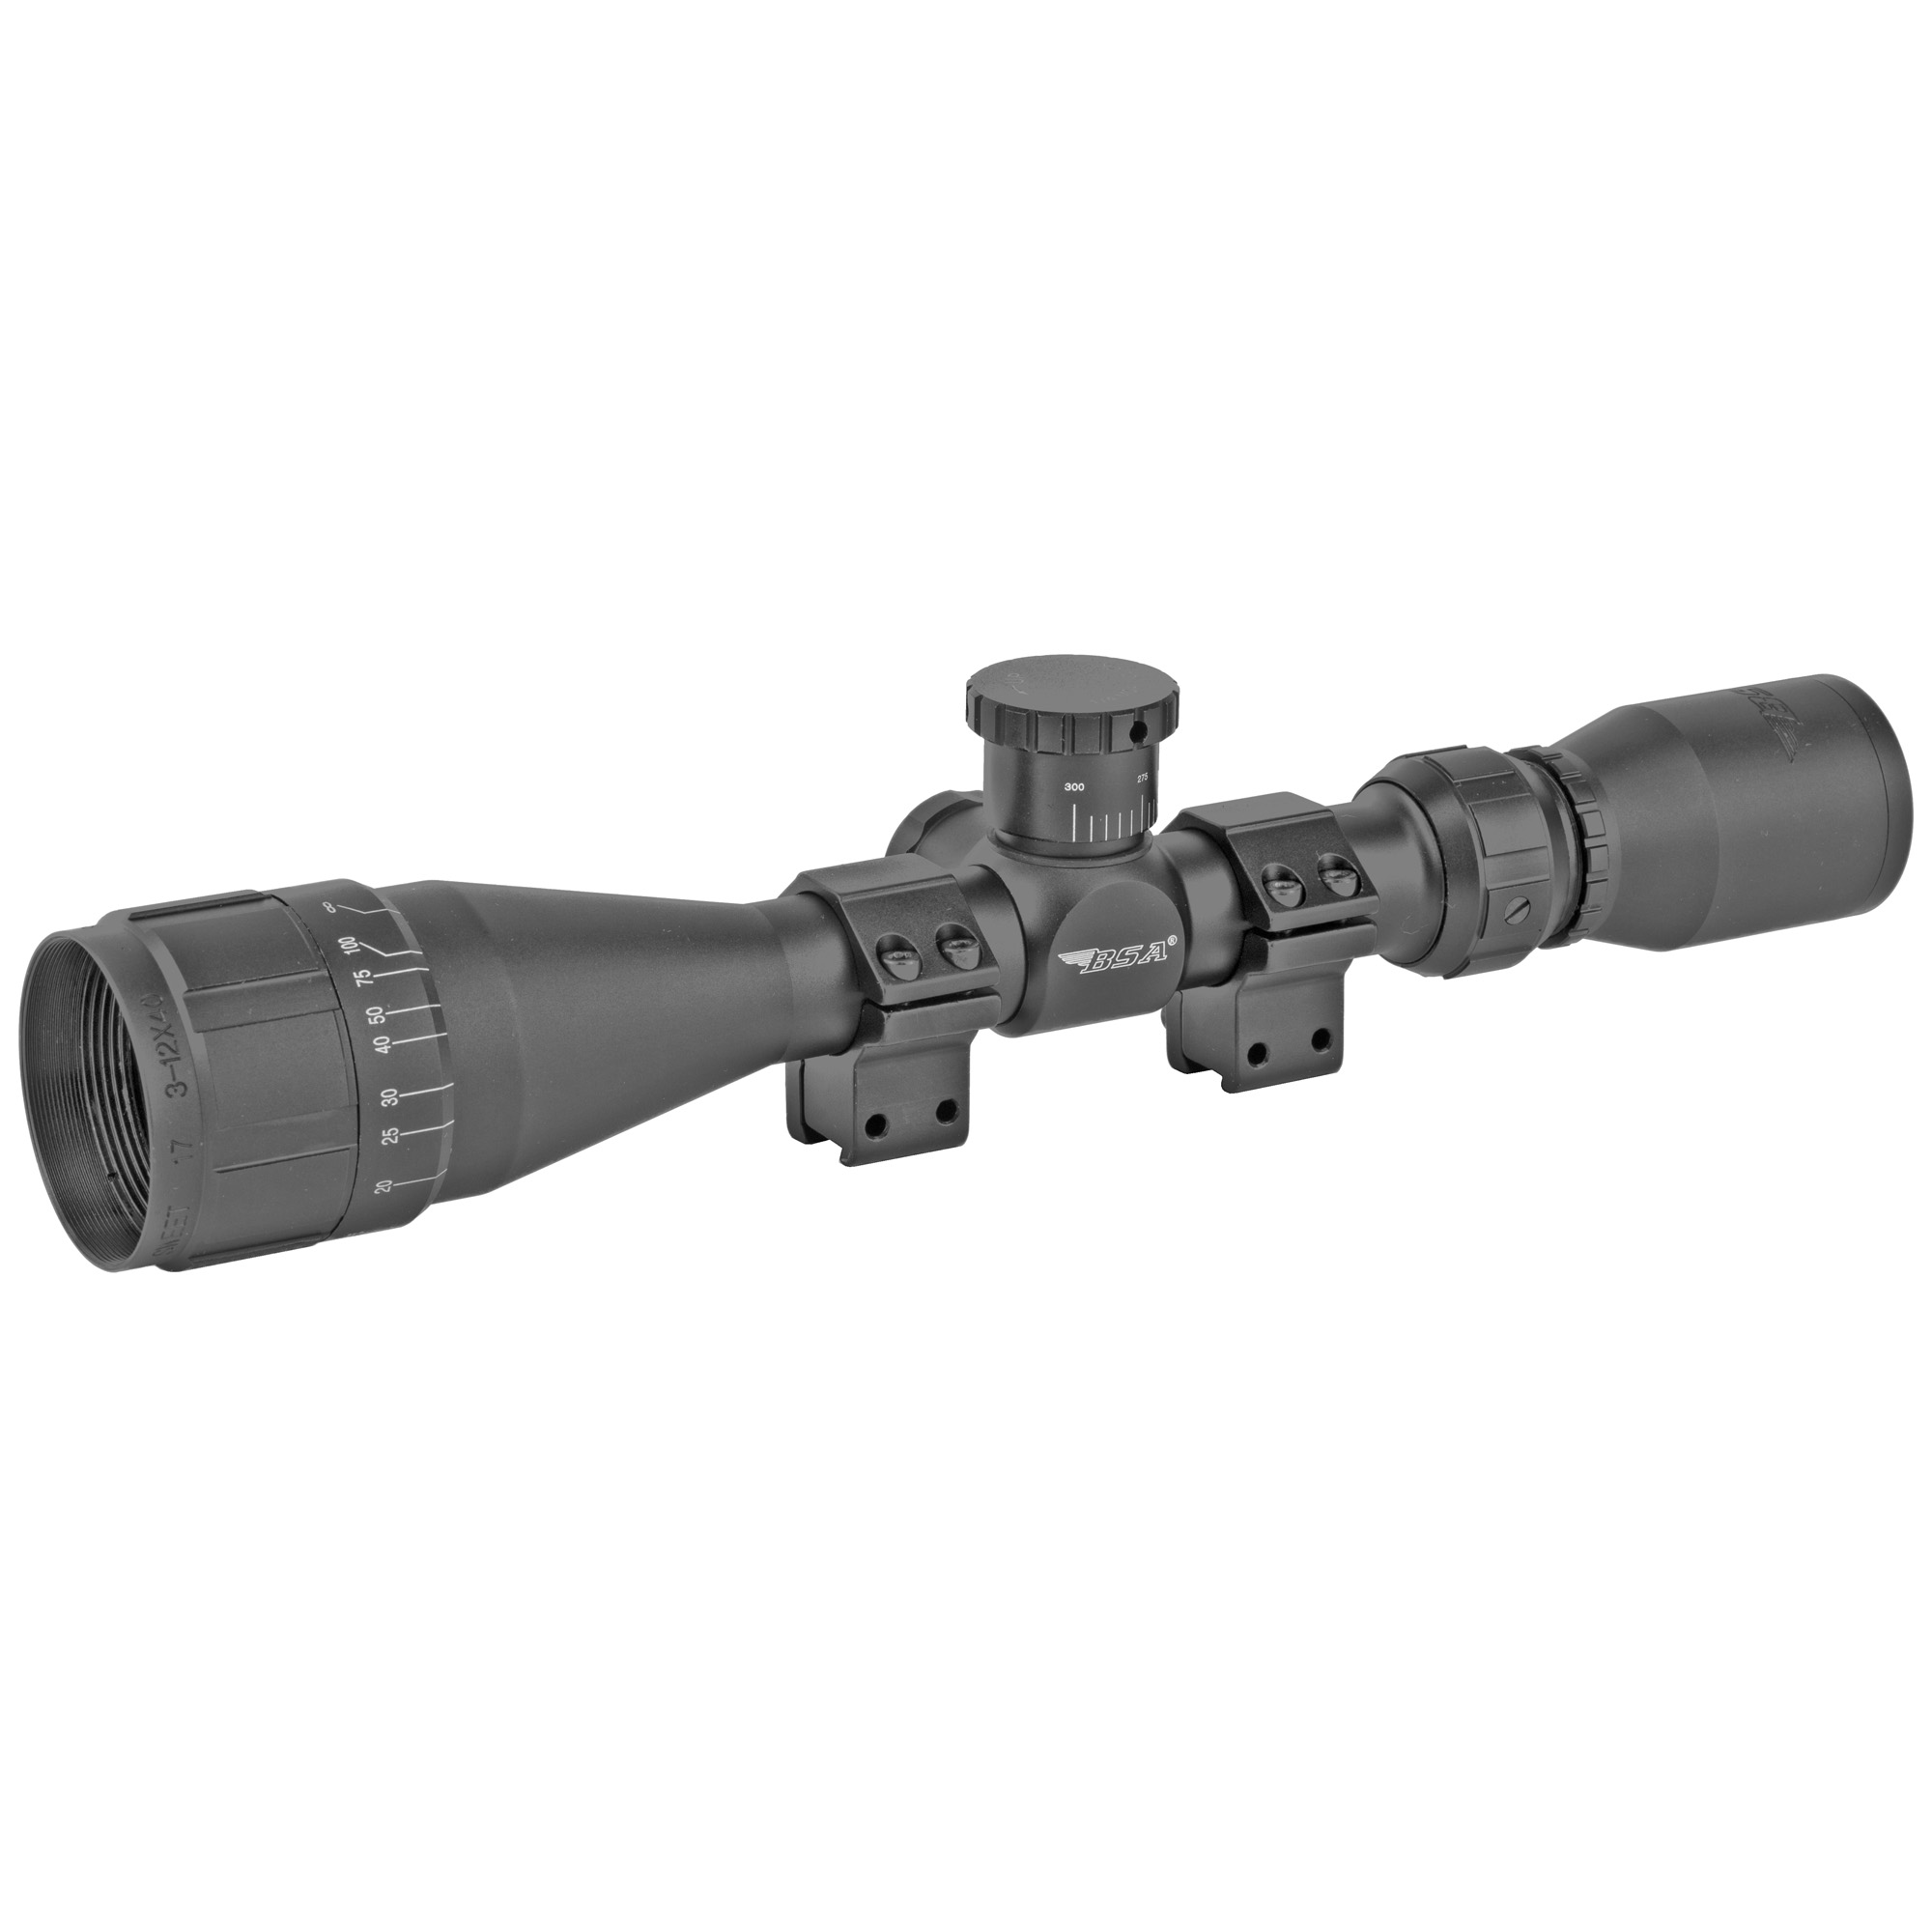 Bsa Sweet 17 3-12x40 30/30 Blk